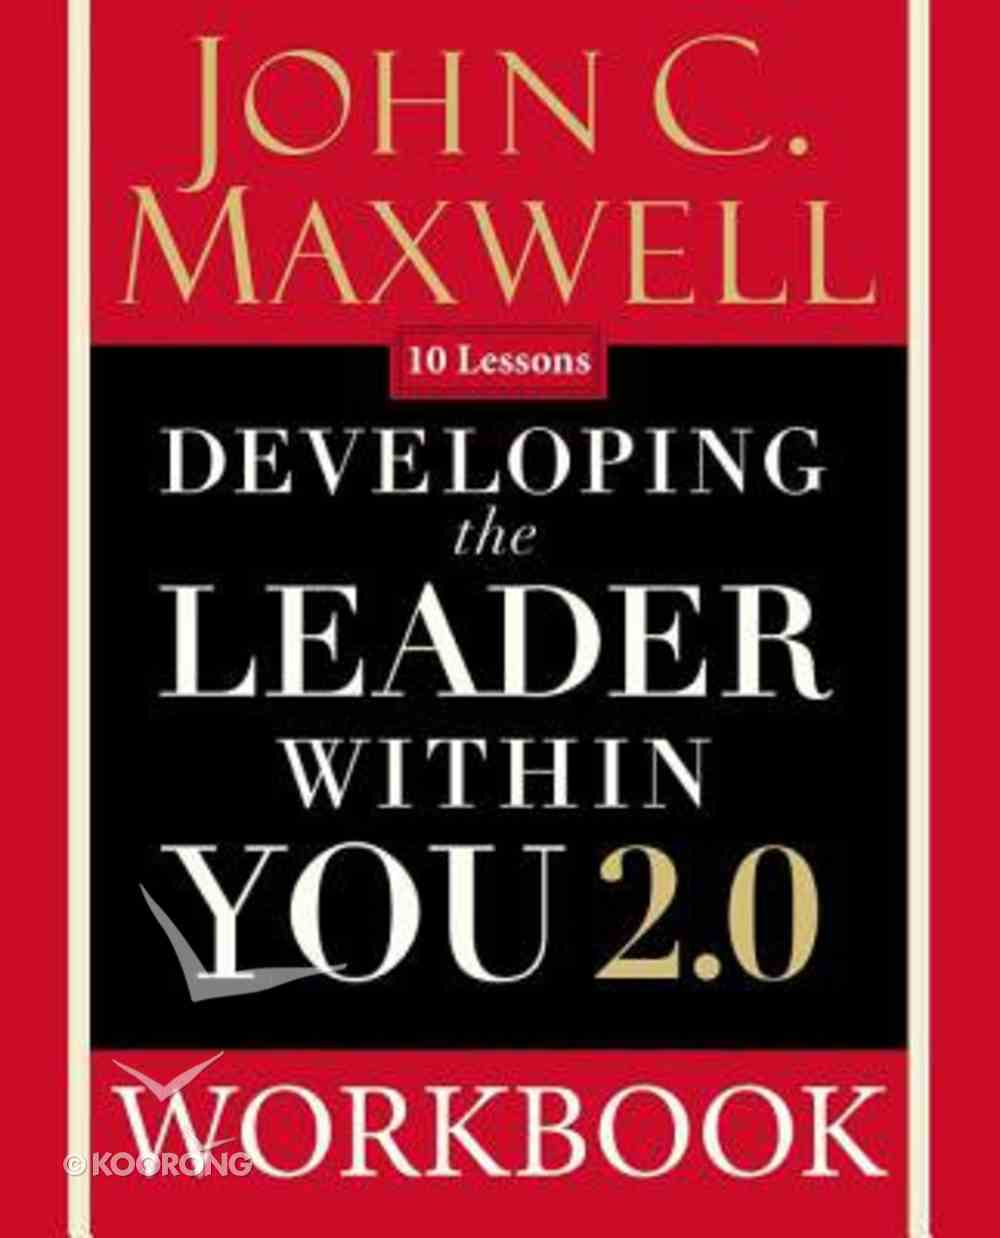 Developing the Leader Within You 2.0 (Workbook) Paperback